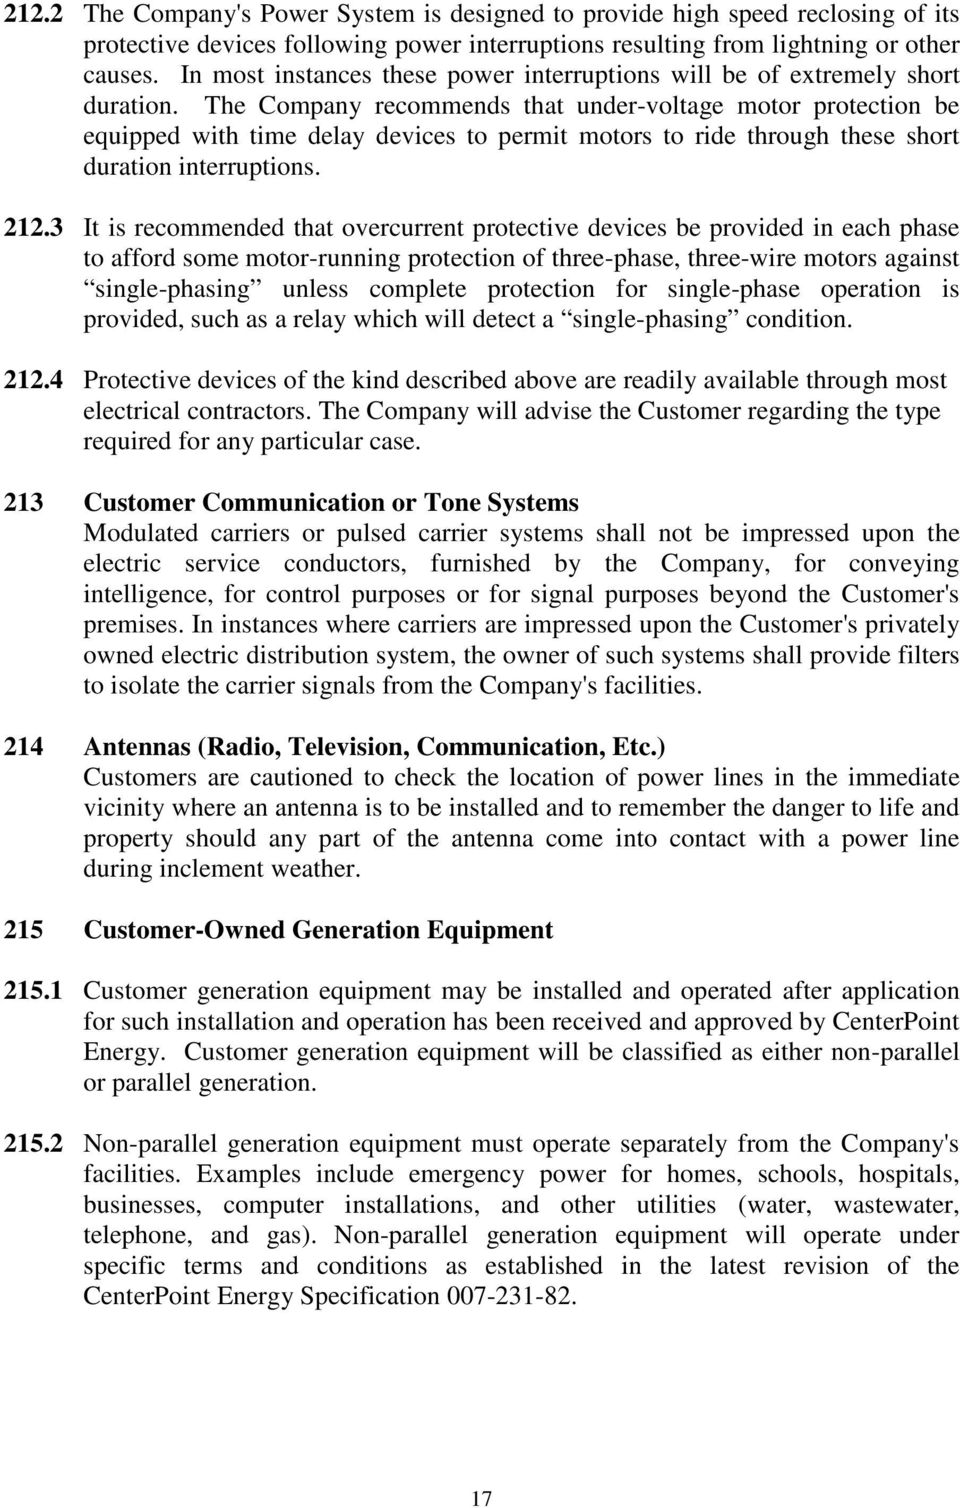 Changes in the 10/2/2013 Revision of the CNP Service Standards Book ...